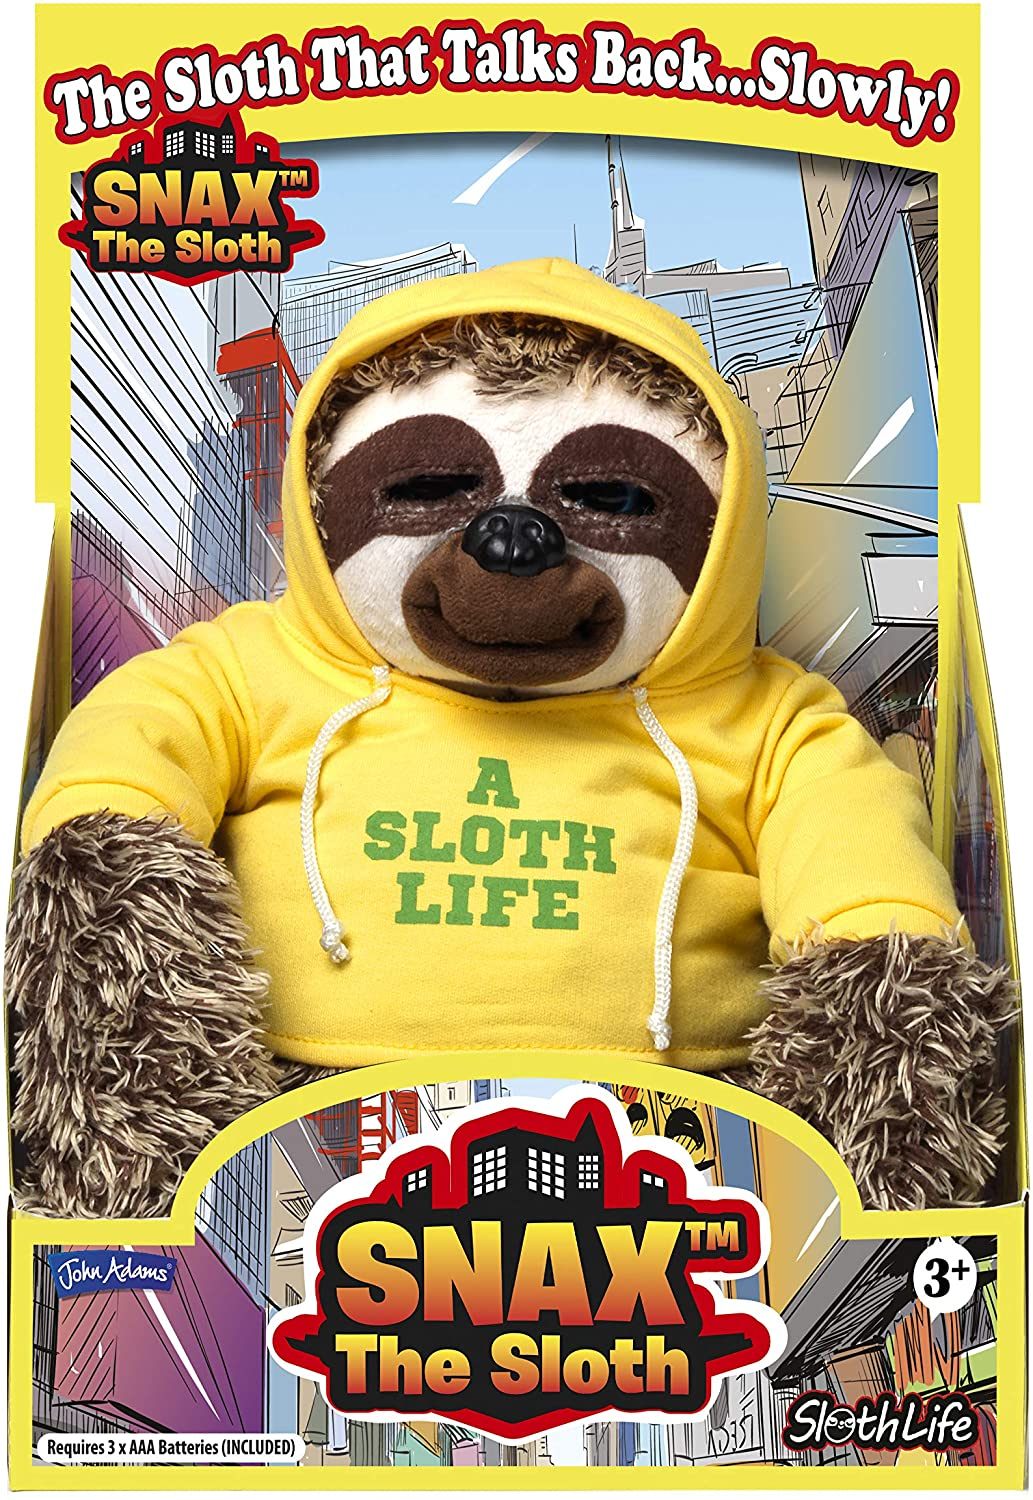 John Adams Snax The Sloth